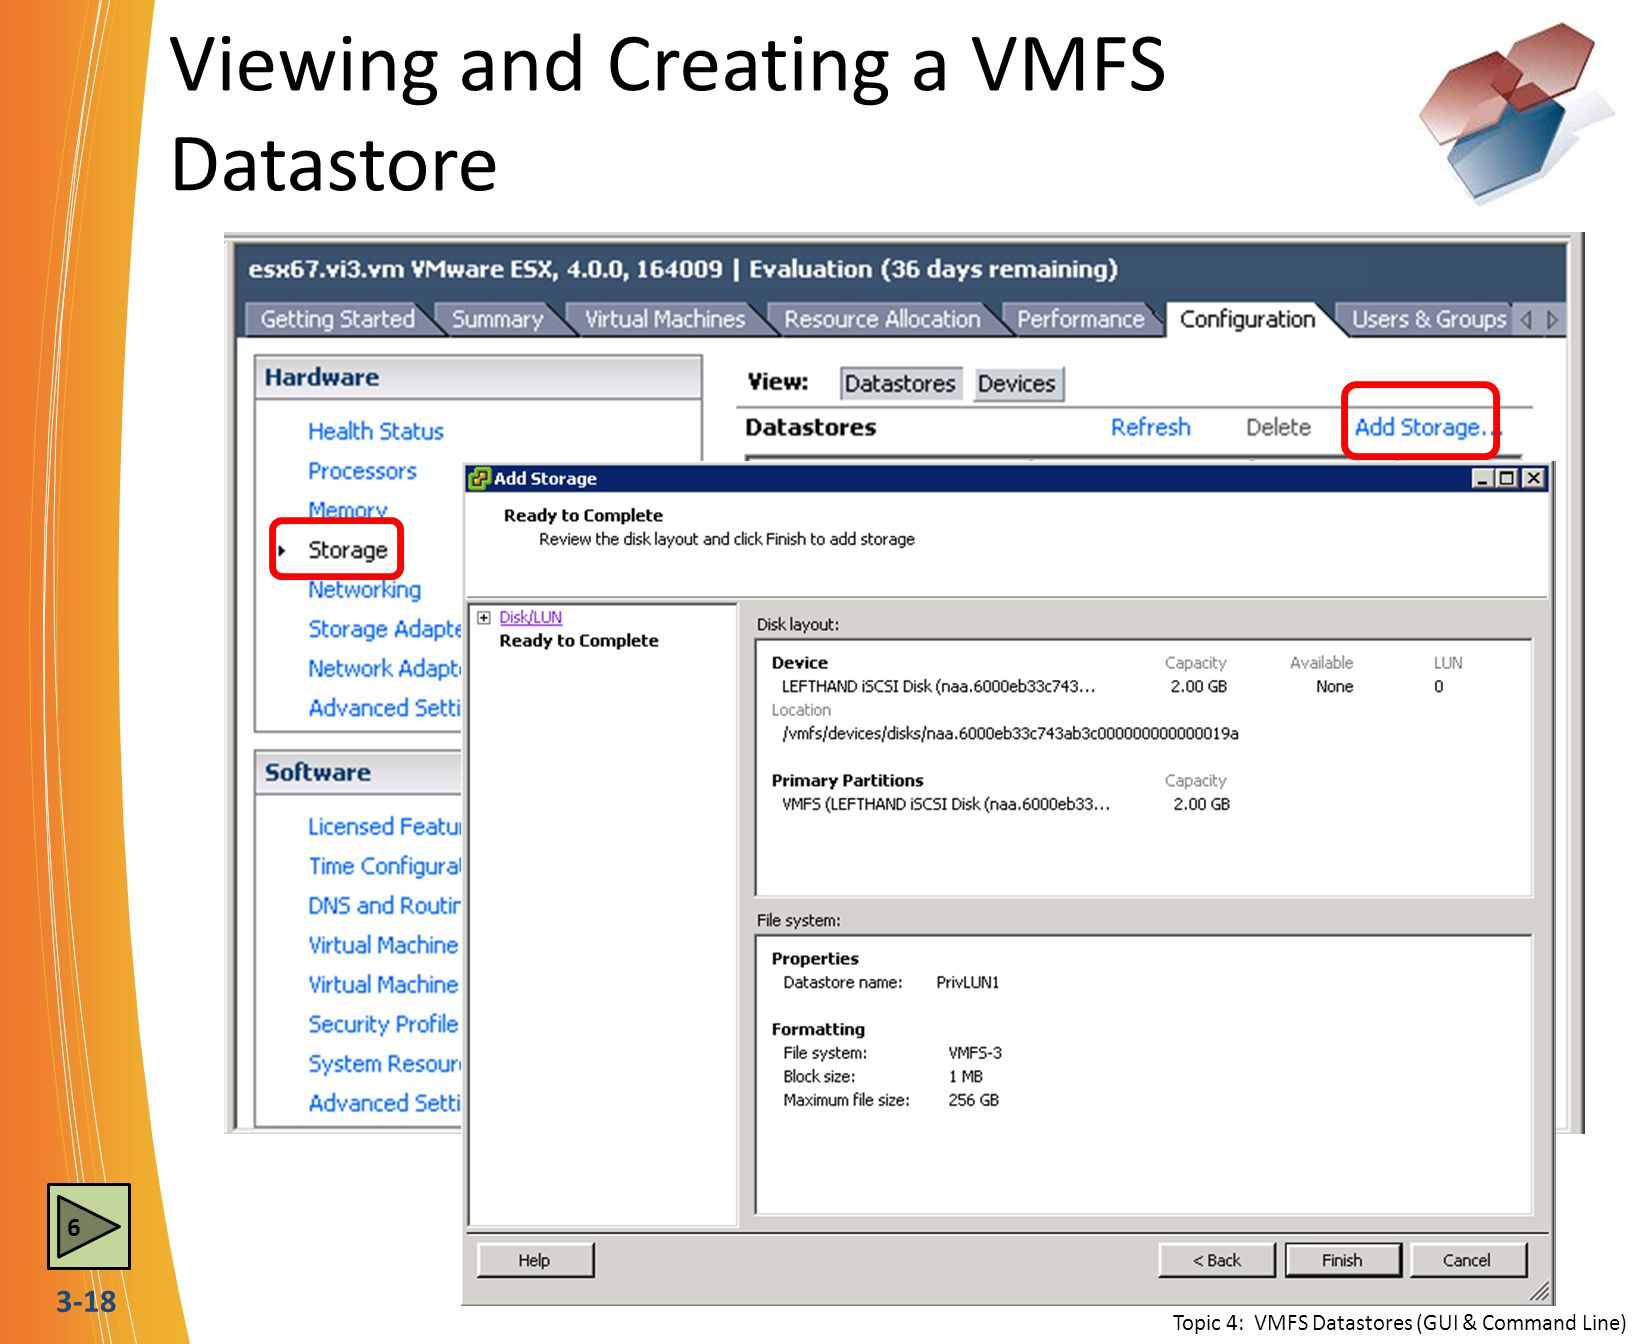 Viewing and Creating a VMFS Datastore